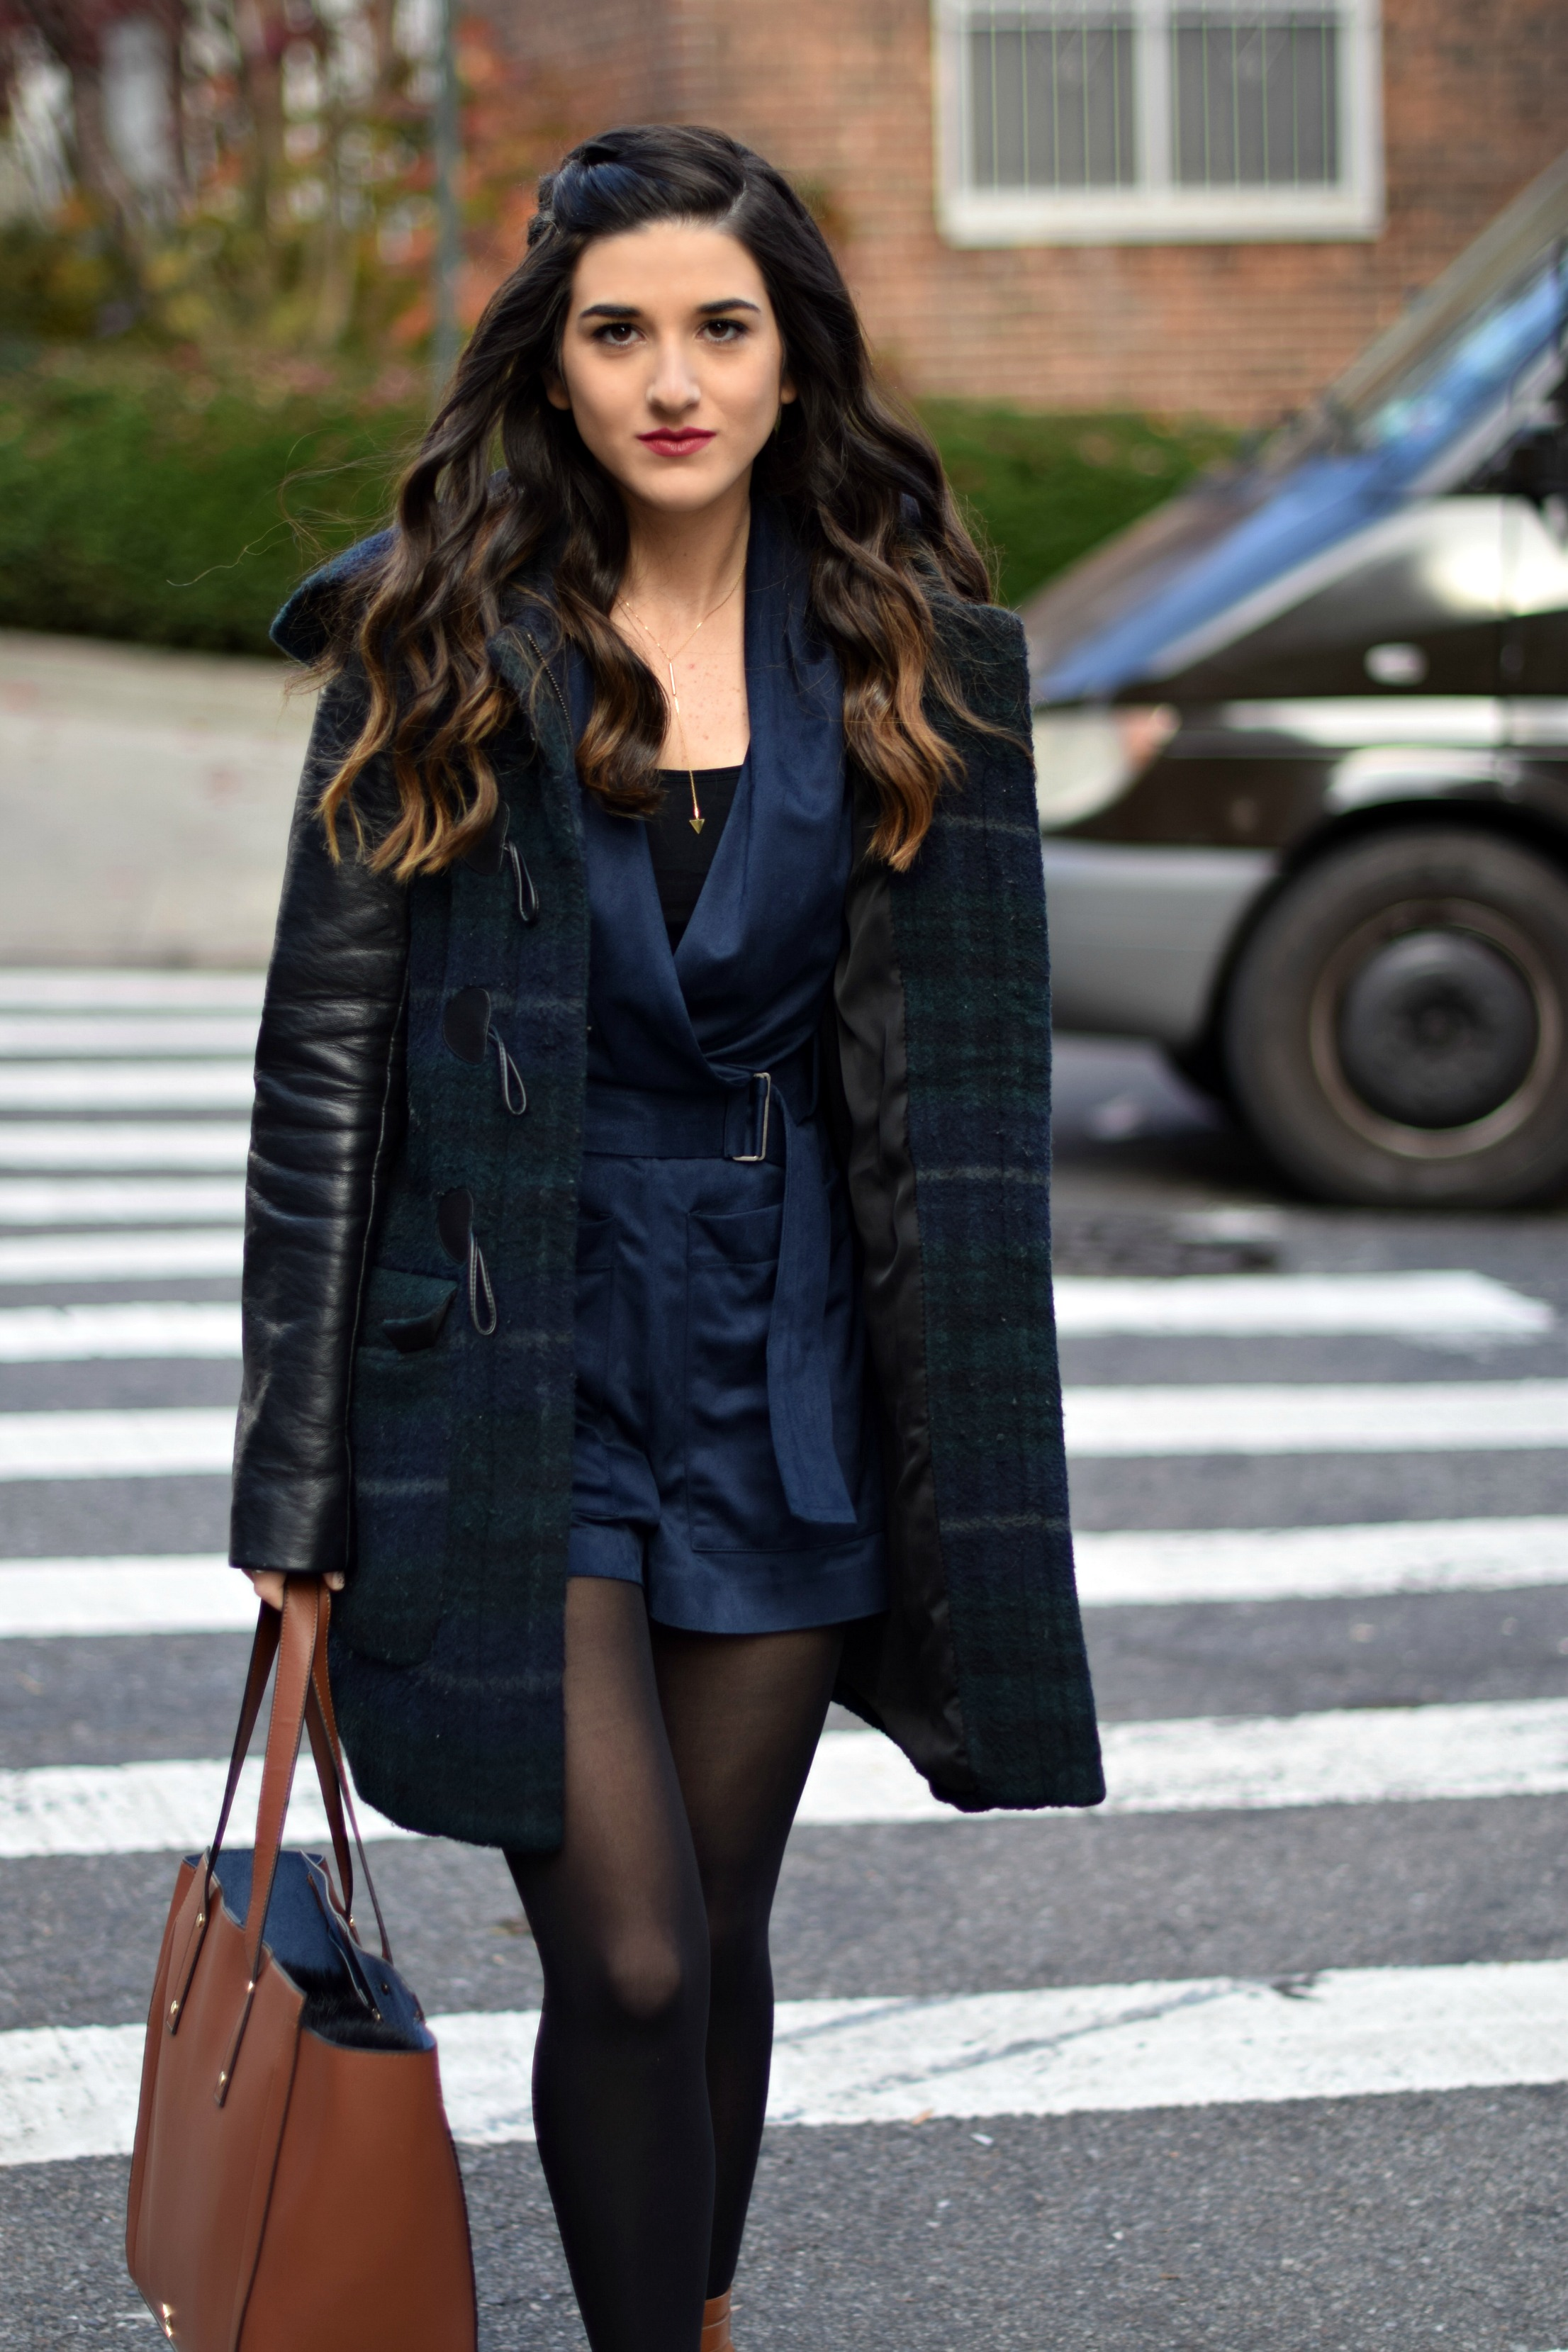 Navy Romper Fringe Booties Louboutins & Love Fashion Blog Esther Santer NYC Street Style Blogger Zara Plaid Coat Leather Sleeves Girl Women OOTD Outfit Accessories Soho Tote Ivanka Trump Black Tights Shoes Boots Winter Hair Braid Inspo Rings Jewelry.jpg